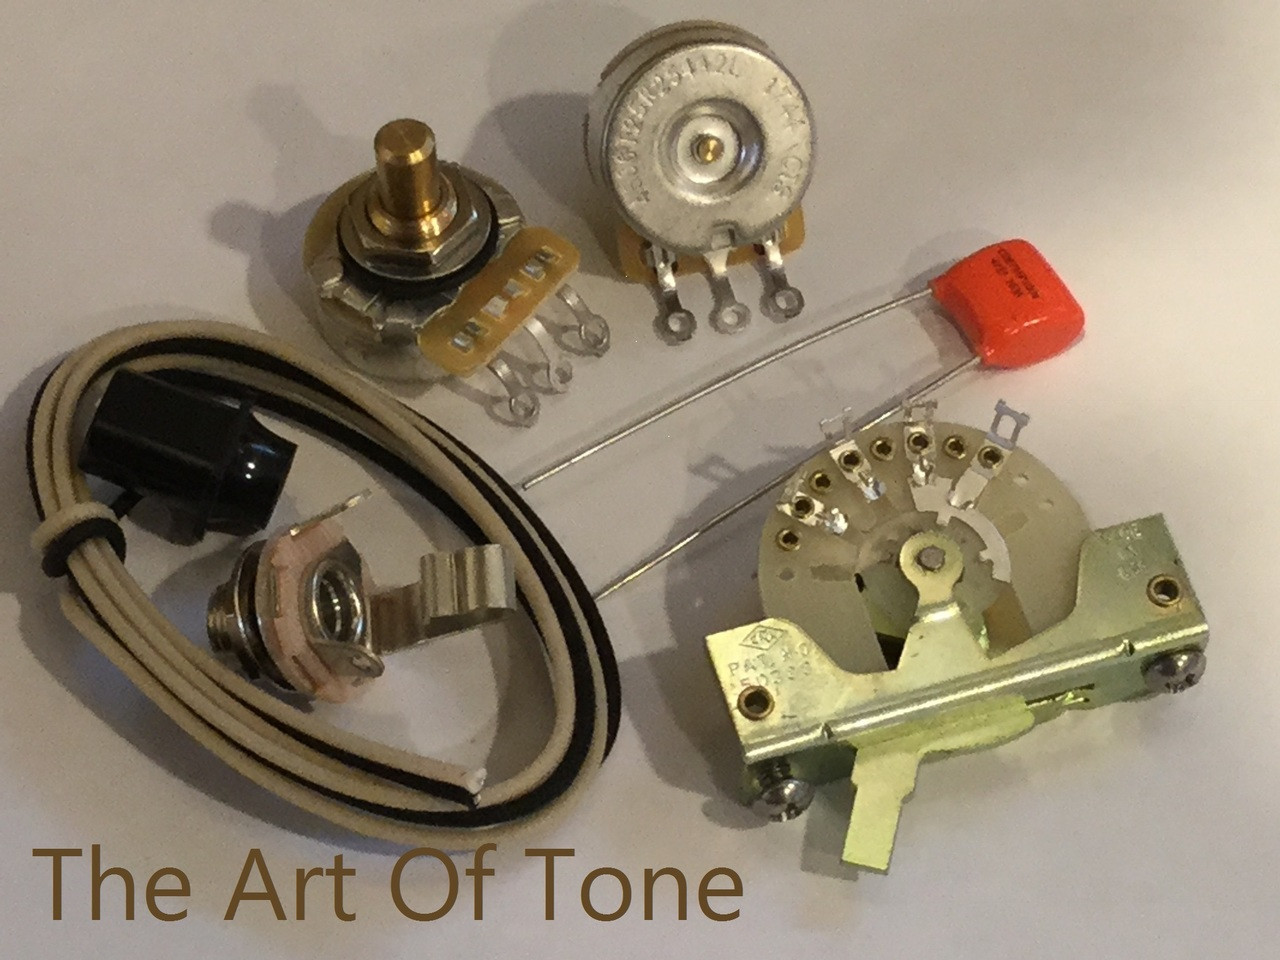 deluxe taot fender telecaster wiring kit the art of tone [ 1280 x 960 Pixel ]